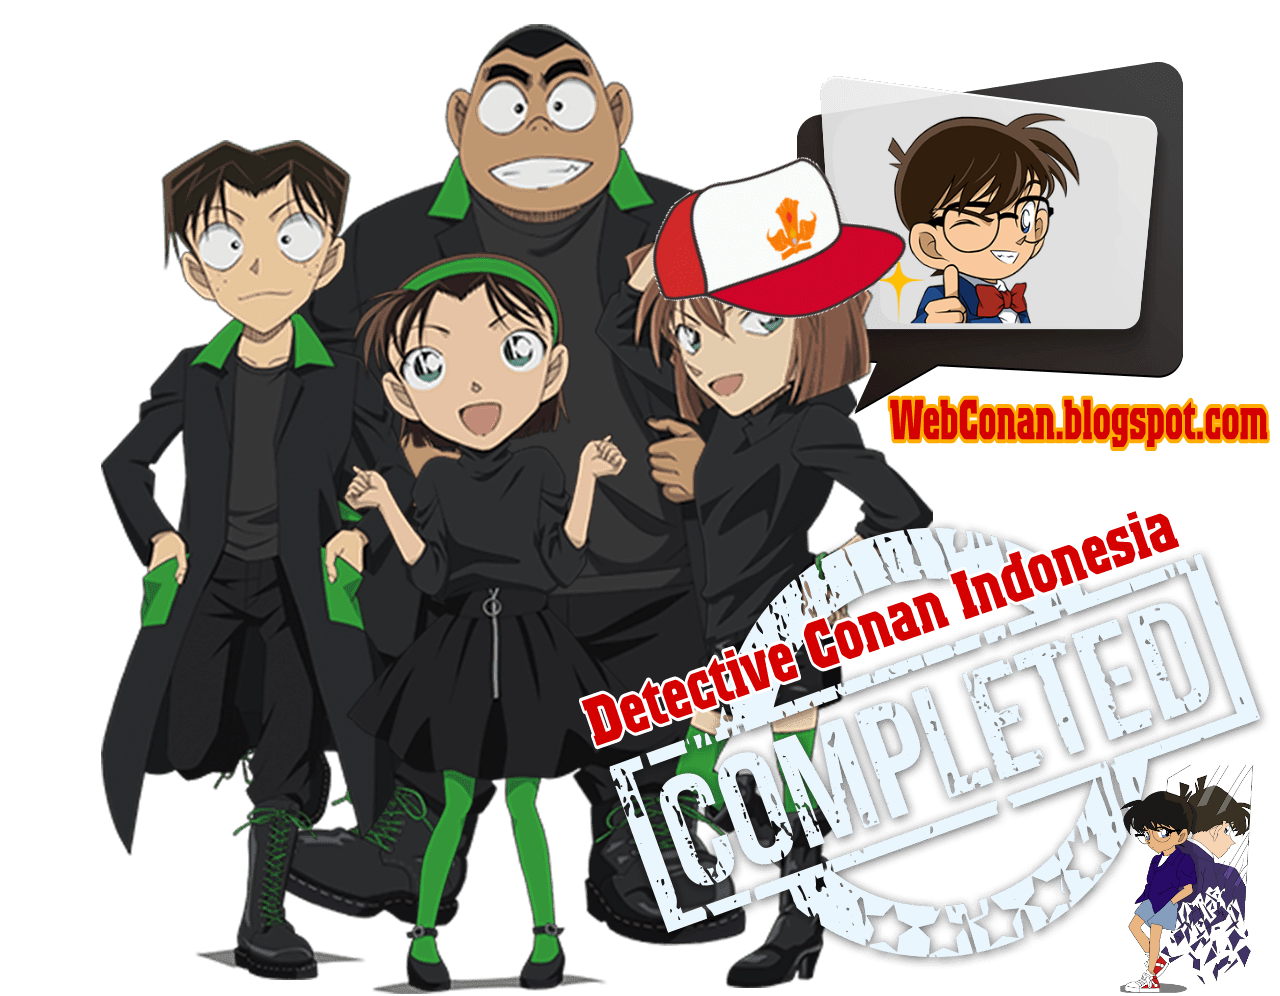 Detetive Conan , Detective Conan Indonesia , Download Detective Conan Movie , Detective Conan Metanteibayoo , Detective Conan WebConan , WebConan Indonesia , DCI , Download Detective Conan Sub Indo , Detective Conan Indonesia , Detective Conan Subtitle Indonesia , Detective Conan Indo Sub , Detective Conan Lengkap , Detective Conan Terbaru , Episode Detective Conan , Download Detective Conan Lengkap , Nonton Detective Conan Sub Indo , Nonton Detective Conan Indo , Nonton Online Detective Conan , Nonton Online Detective Conan , Detective Conan Indonesia Bahasa Indonesia , Download Gratis Detective Conan Sun Indo , Download Detective Conan Sub Indo Terbaru , Detective Conan Lengkap Terbaru , Episode Detective Conan Lengkap Subtitle Indonesia , Episode Terbaru Detective Conan Indonesia , Detective Conan Movie Indo , Detective Conan Movie 23 , Detective Conan Movie 24 , Detective Conan Movie 25 , Detective Conan Move 26 , Detective Conan Movie 27 , Detective Conan Movie Lengkap , Movie Detective Conan , Detective Conan VS Lupin , Detective Conan Movie 23 Sub Indo , Detective Conan Movie 24 Sub Indo , Detective Conan Movie 25 Sub Indo , Detective Conan Movie 26 Sub Indo , Detective Conan Movie 27 Sub Indo , Detective Conan Movie 23 Indo , Detective Conan Movie 24 Indo , Detective Conan Movie 25 Indo , Detective Conan Movie 26 Indo , Detective Conan Movie 27 Indo , Detective Conan Movie 23 Subtitle Indonesia , Detective Conan Movie 24 Subtitle Indonesia , Detective Conan Movie 25 Subtitle Indonesia , Detective Conan Movie 26 Subtitle Indonesia , Detective Conan Movie 27 Subtitle Indonesia , Detective Conan Movie Lengkap Subtitle Indonesia , Detective Conan Movie Terbaru Dan Terlengkap , Detective Conan Movie 2019 , Detective Conan Movie 2020 , Detective Conan Movie 2021 , Detective Conan Movie 2022 , Detective Conan Movie 2023 , Detective Conan Movie 2024 , Detective Conan Movie 2025 , Detective Conan Terbaru 2019 , Detective Conan Terbaru 2020 , Episode Terbaru Detective Conan , Detective Conan Terbaru 2021 , Detective Conan Terbaru 2022 , Detective Conan Terbaru 2023 , Detective Conan Terbaru 2024 , Detective Conan Terbaru 2025 , Detective Conan Terbaru 2026 , Detective Conan Terbaru 2027 , WebConan Indonesia Detective Conan Indonesia , Metanteibayoo Detective Conan Indonesia , Samehadaku , Oploverz , Conan ID , Anime Subtitle Indonesia , Anime Indo , Anime Sub Indo , Anime Indonesia , Cartoon , Kartun, Anime Bahasa Indonesia , Terima Kasih